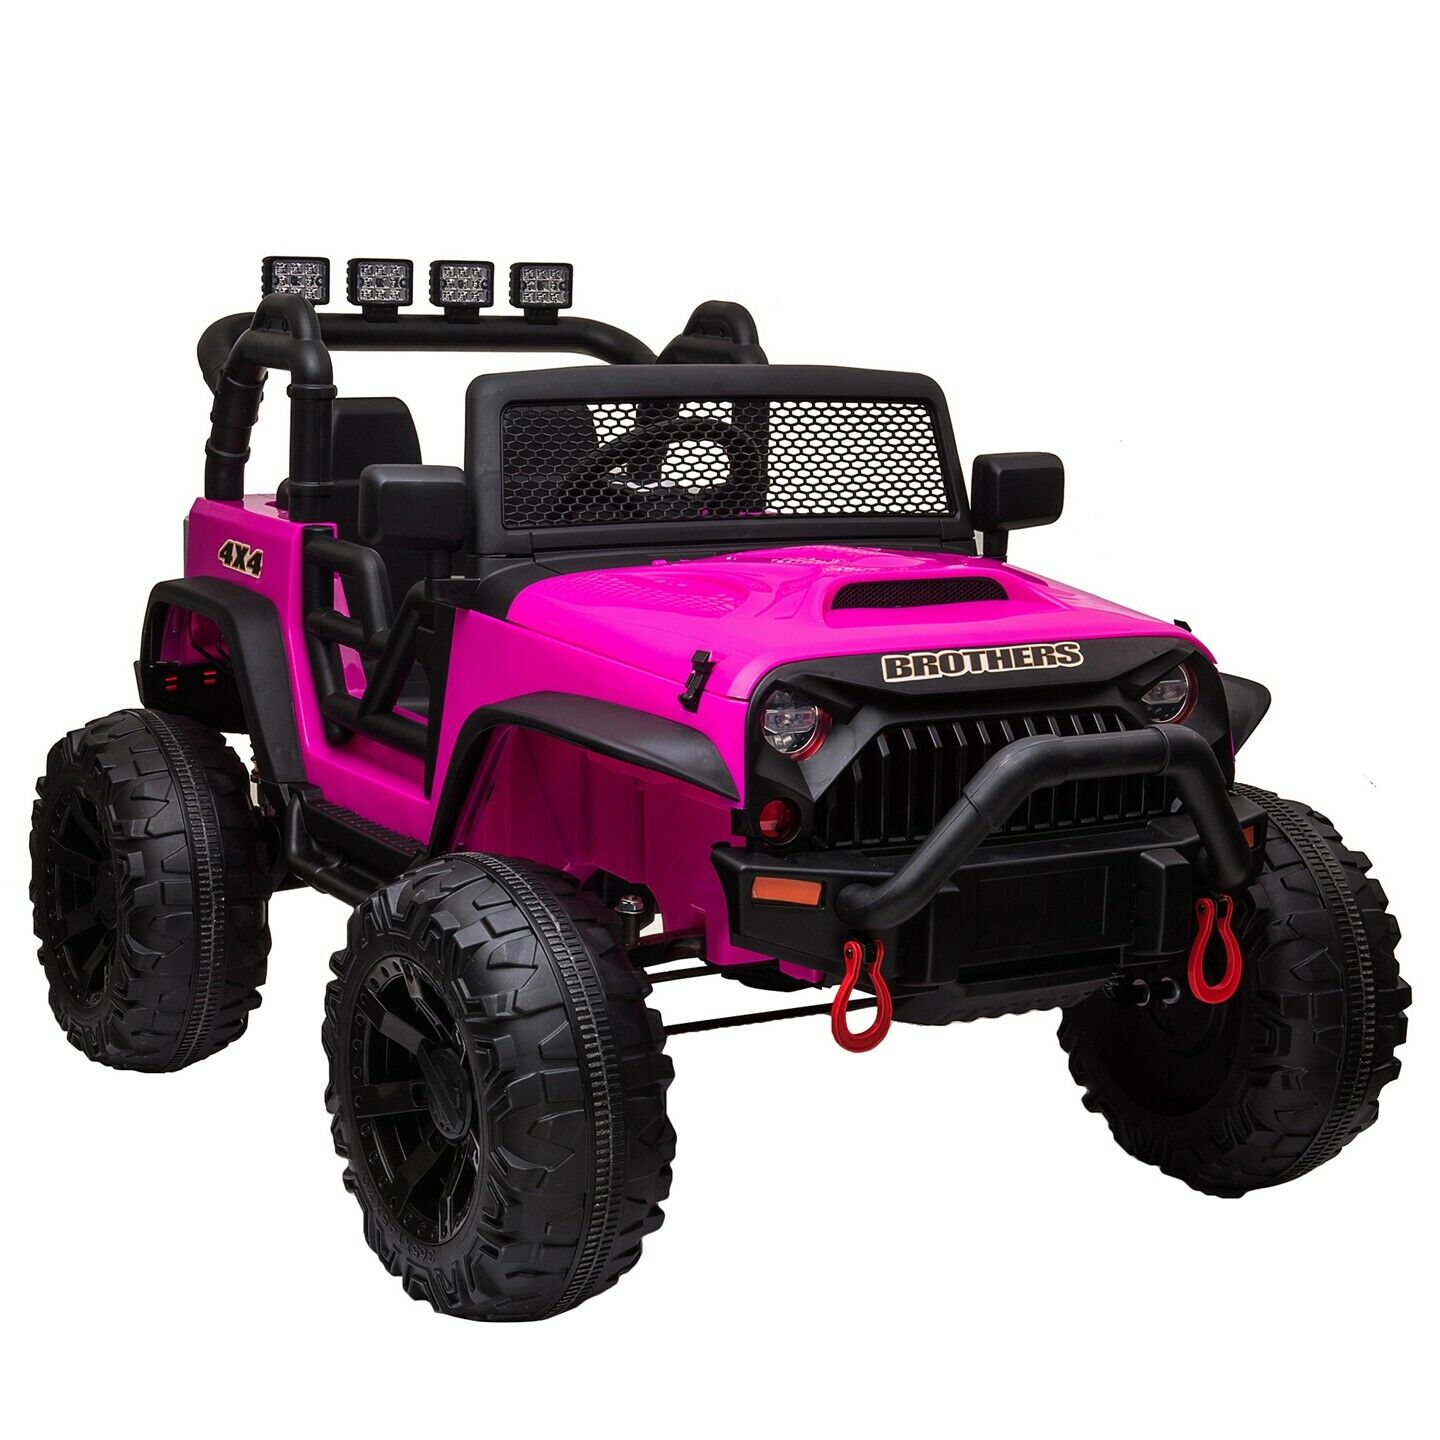 12v Battery Powered Kids Ride On Car Rc Remote Control W Led Lights Music For Sale Online Ebay